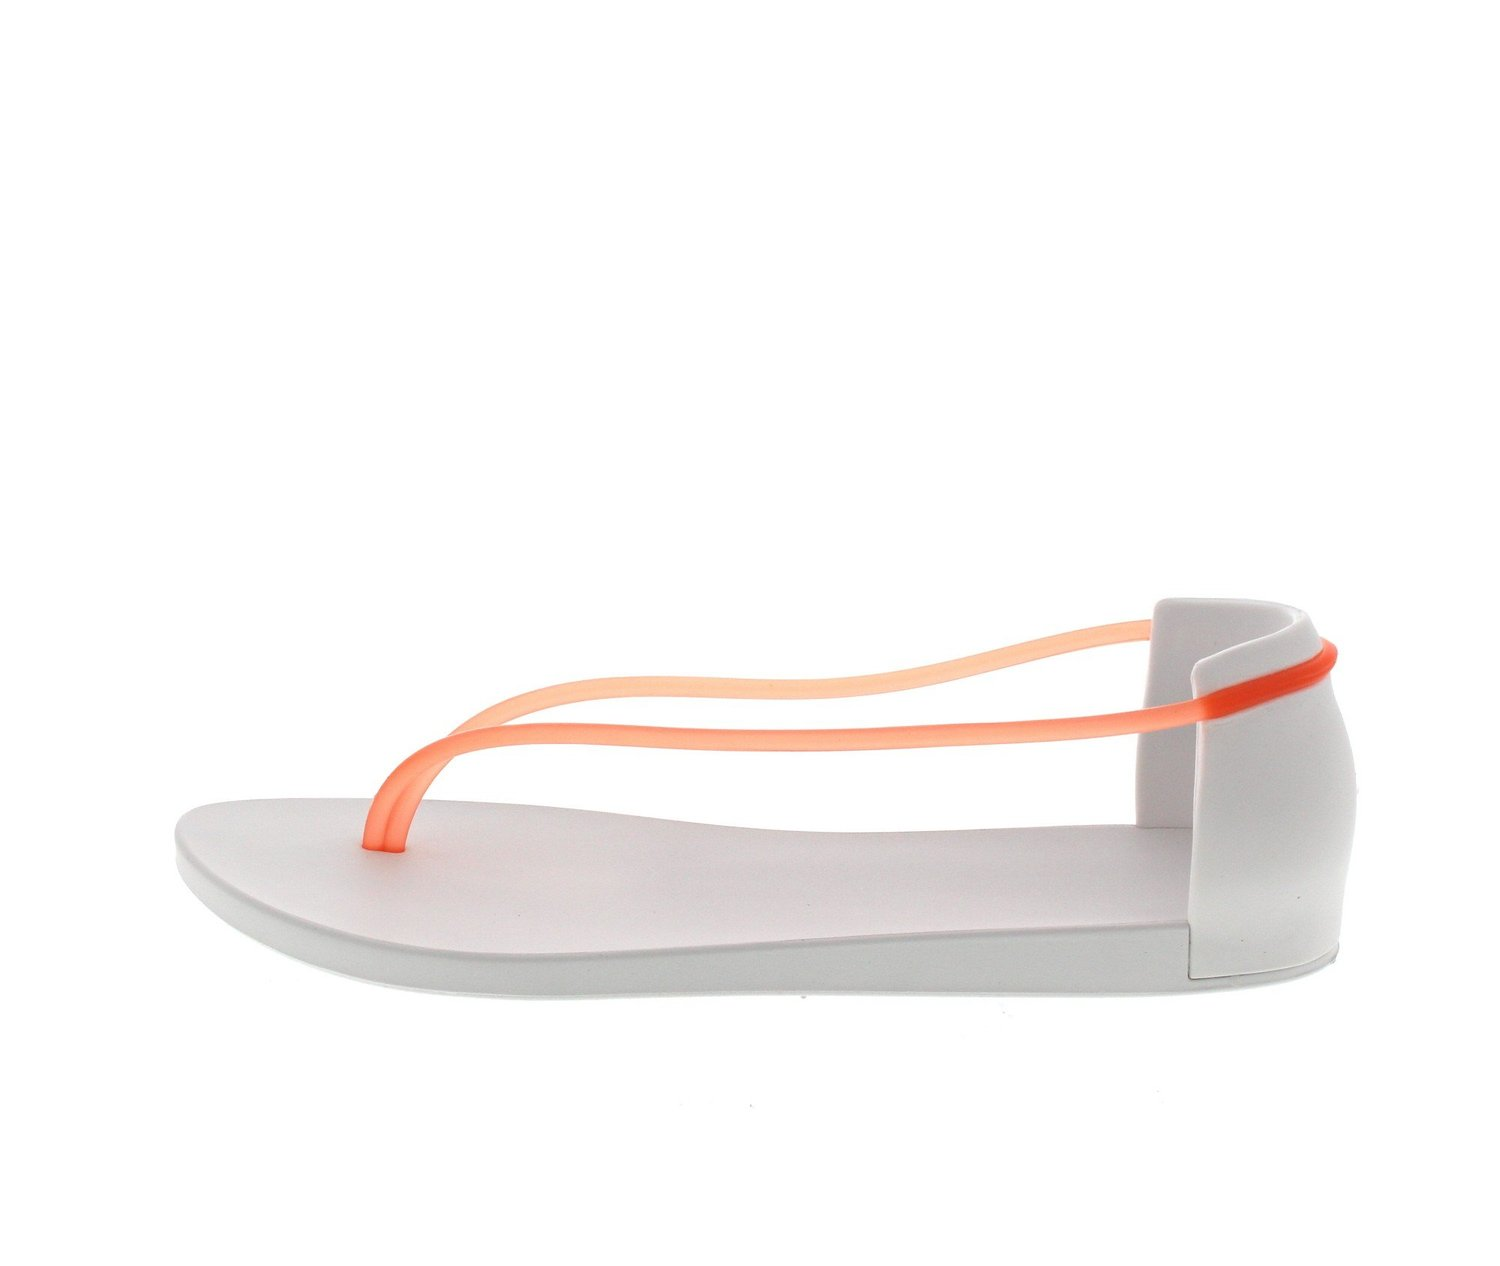 83554a0cc73 Sandals Flip-flops - Ipanema Philippe Starck Thing N Fem White pink